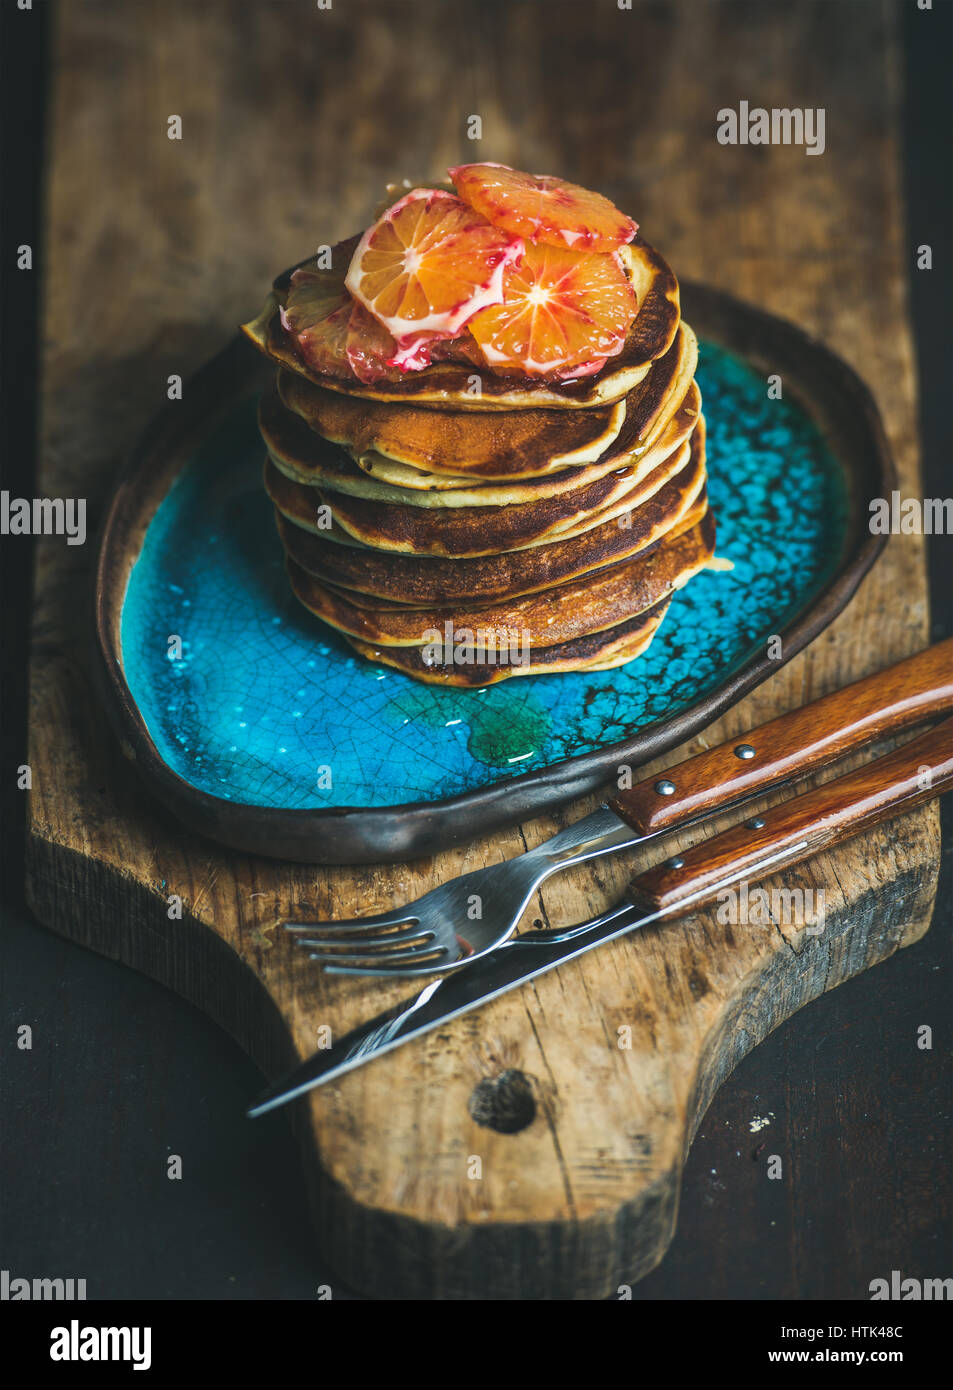 Pancakes with honey and bloody orange slices on blue plate - Stock Image